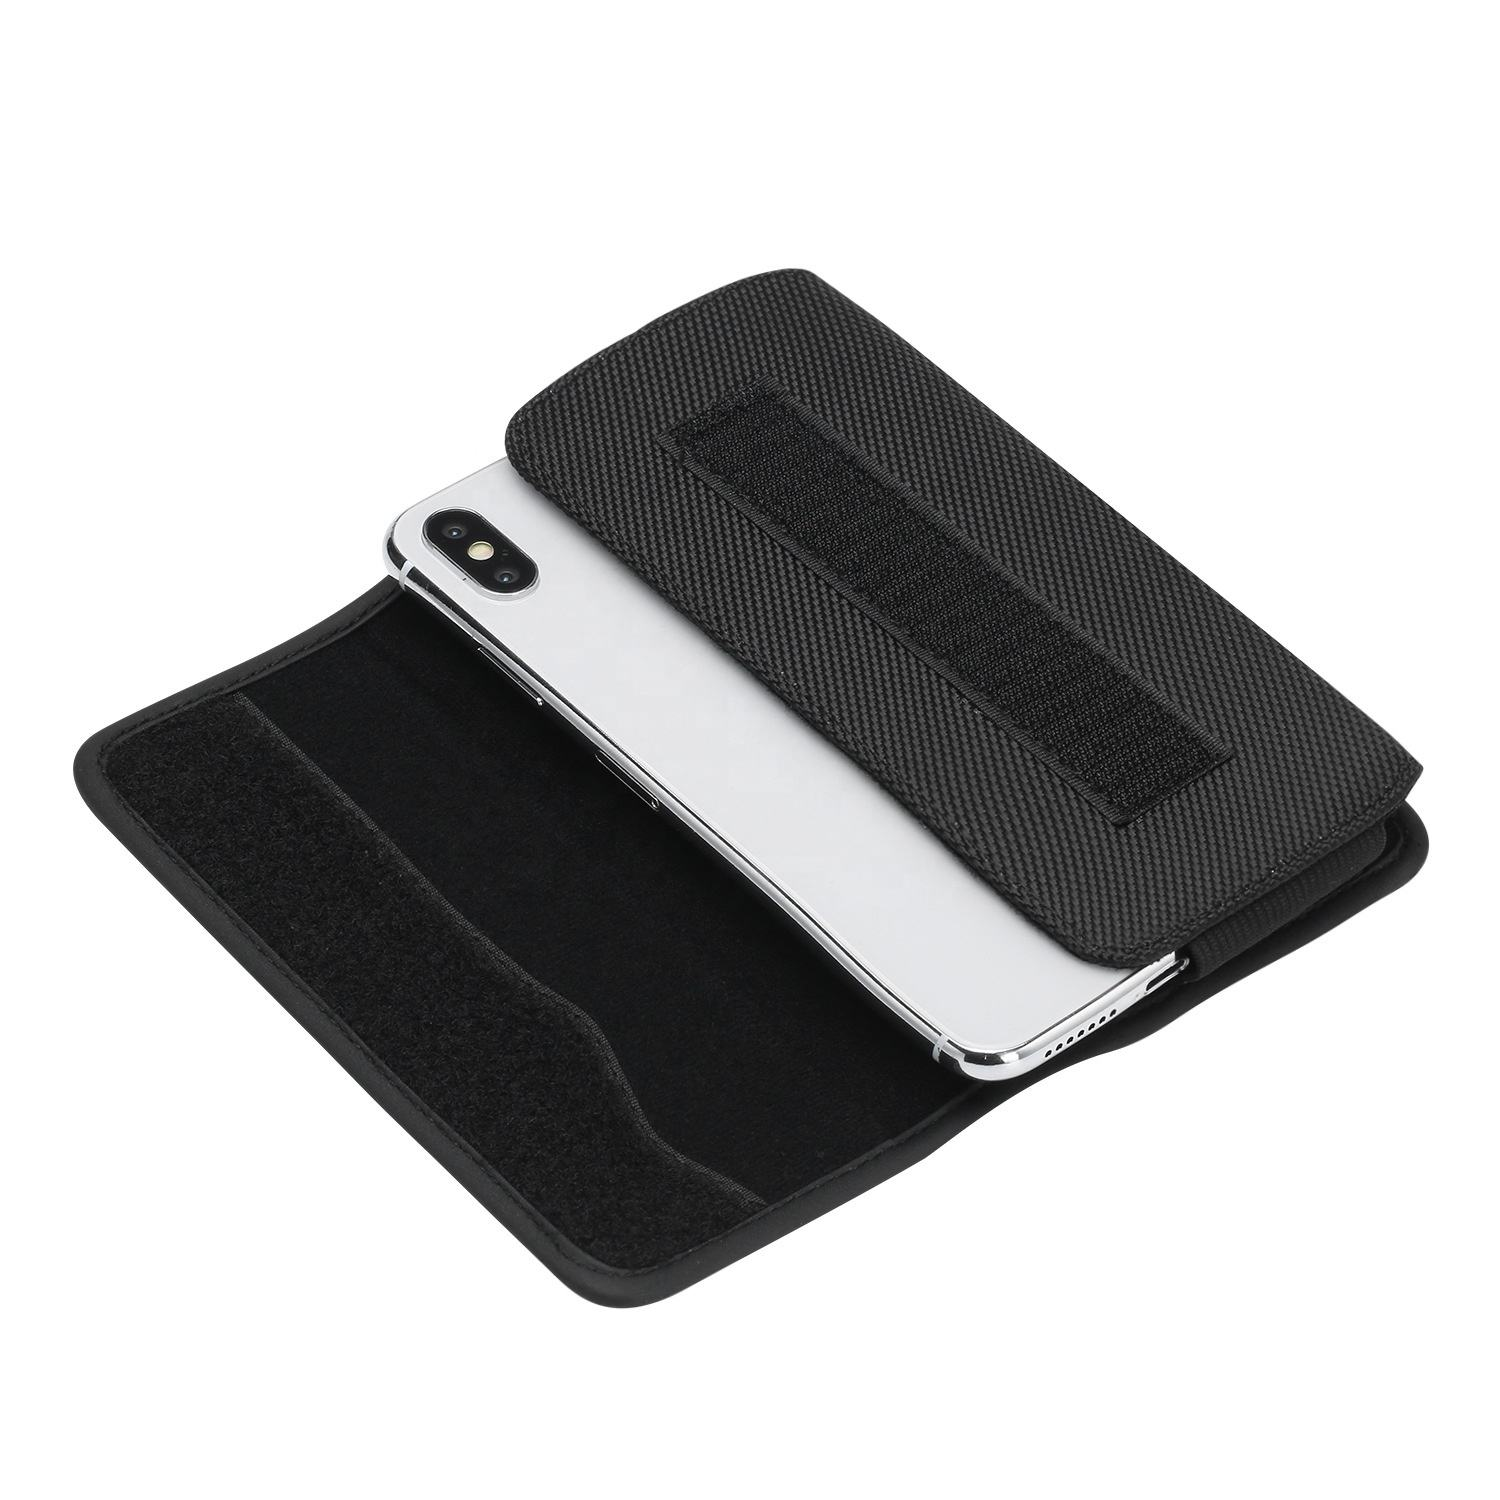 2020 hot selling Cellphone Accessories Classic horizontal cell phone holster case universal nylon mobile phone pouch